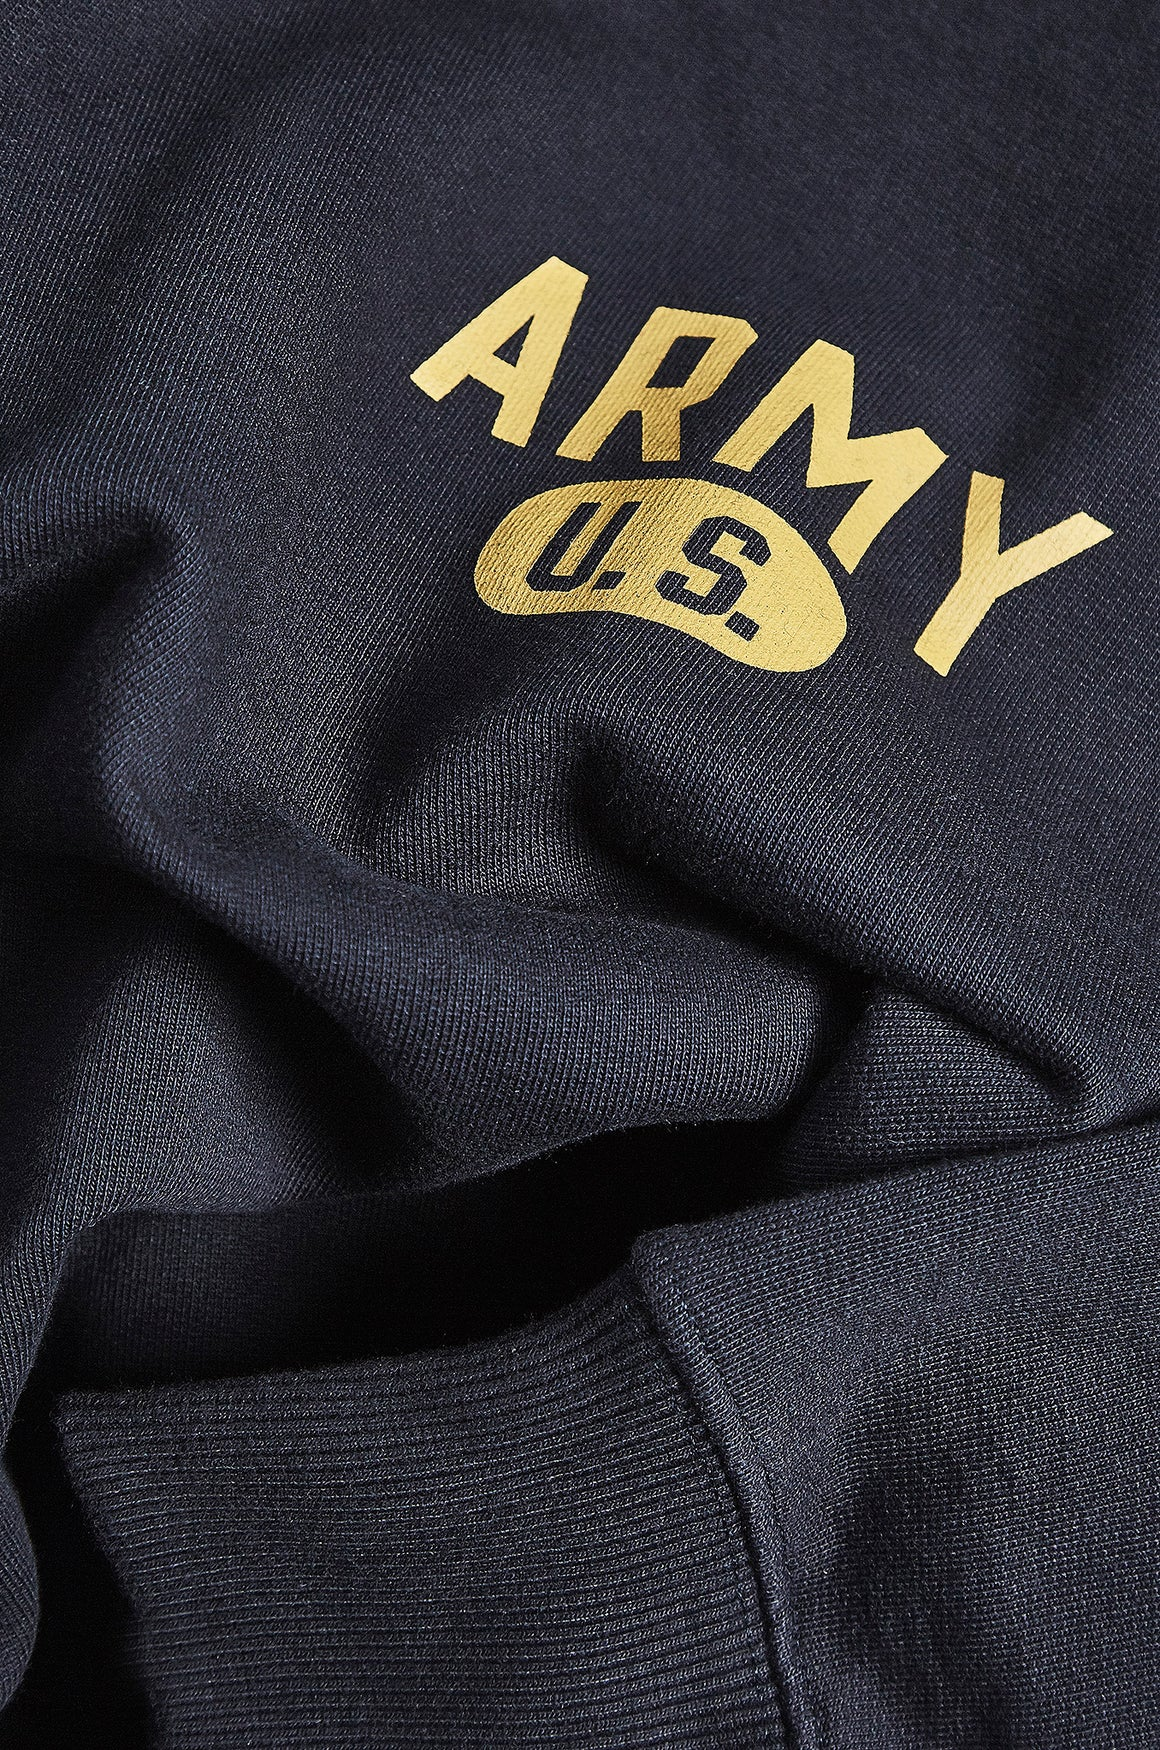 Men's Navy Raglan Sweatshirt with Yellow WW2 Army US Motif by Realm Empire